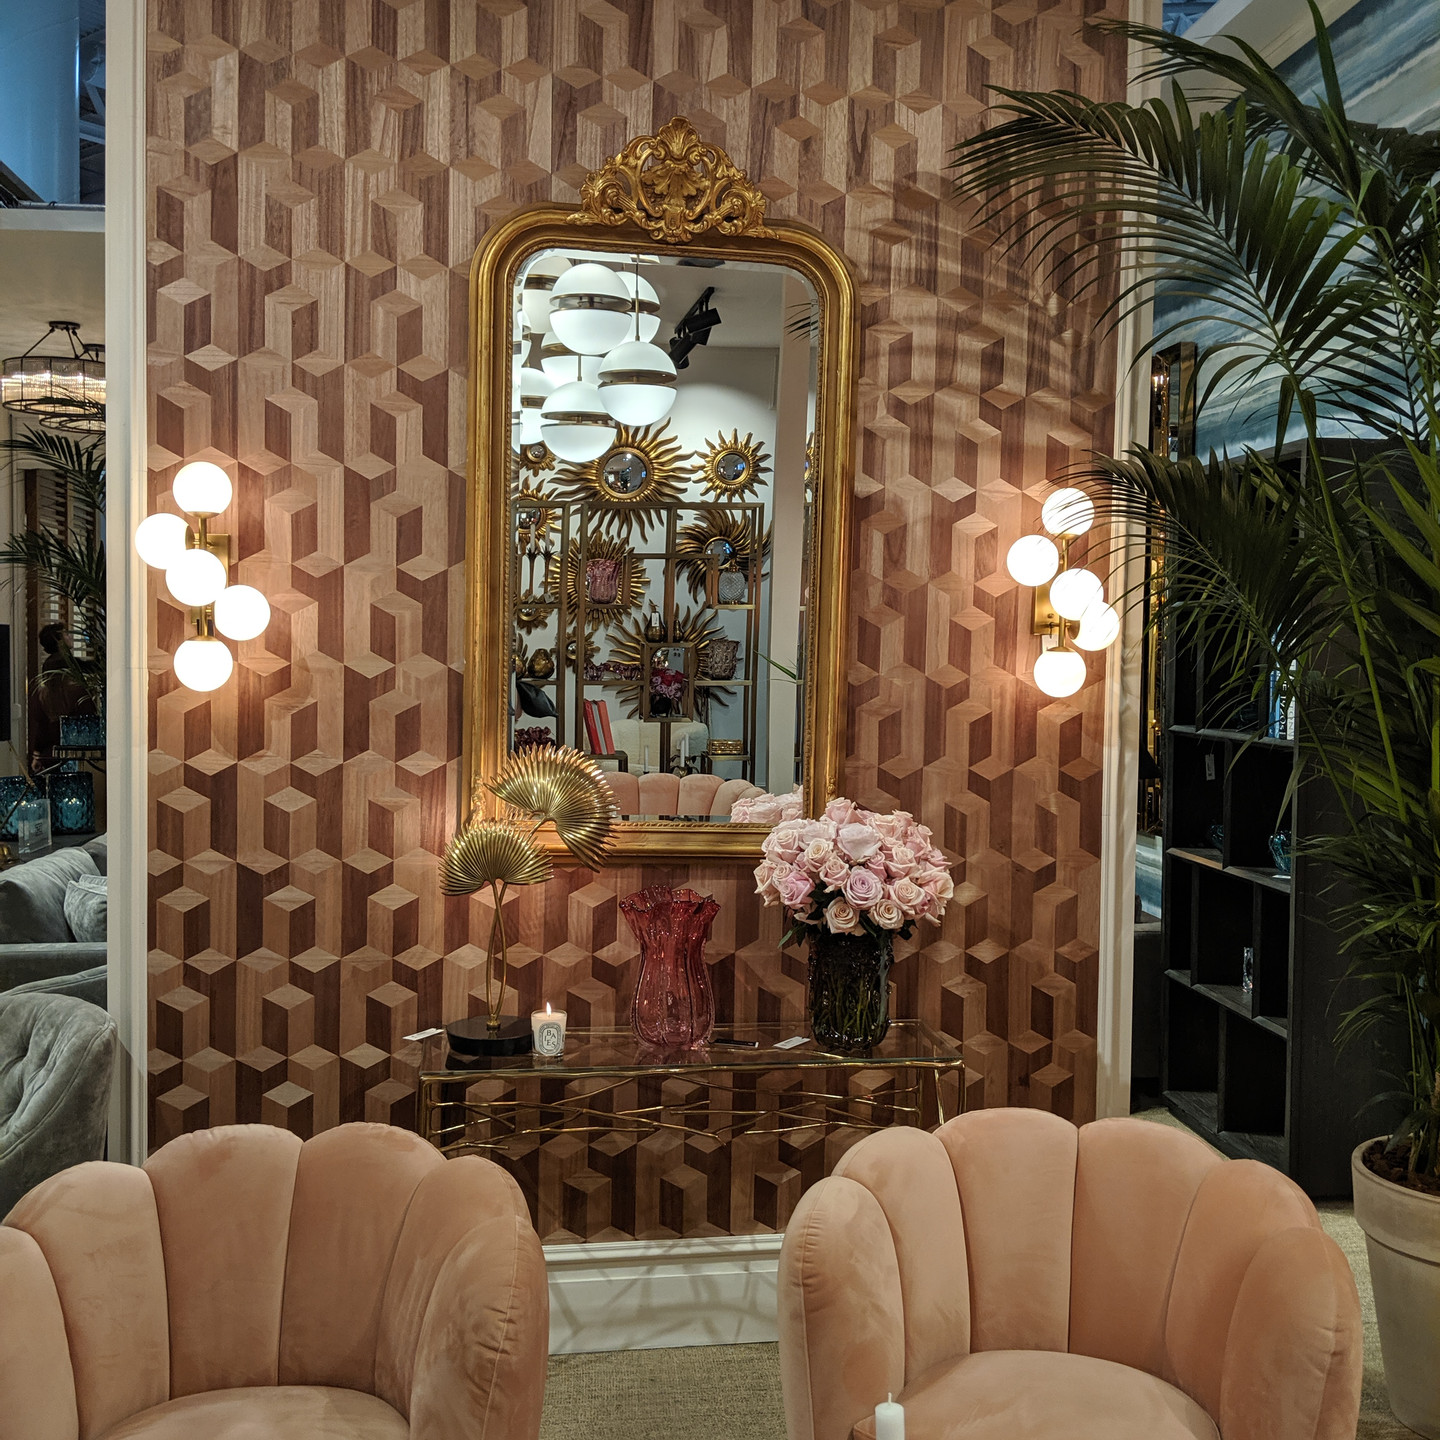 Mauve & Rose Sitting Area with Velvet Chairs, Wallpaper, and Large Gold Mirror